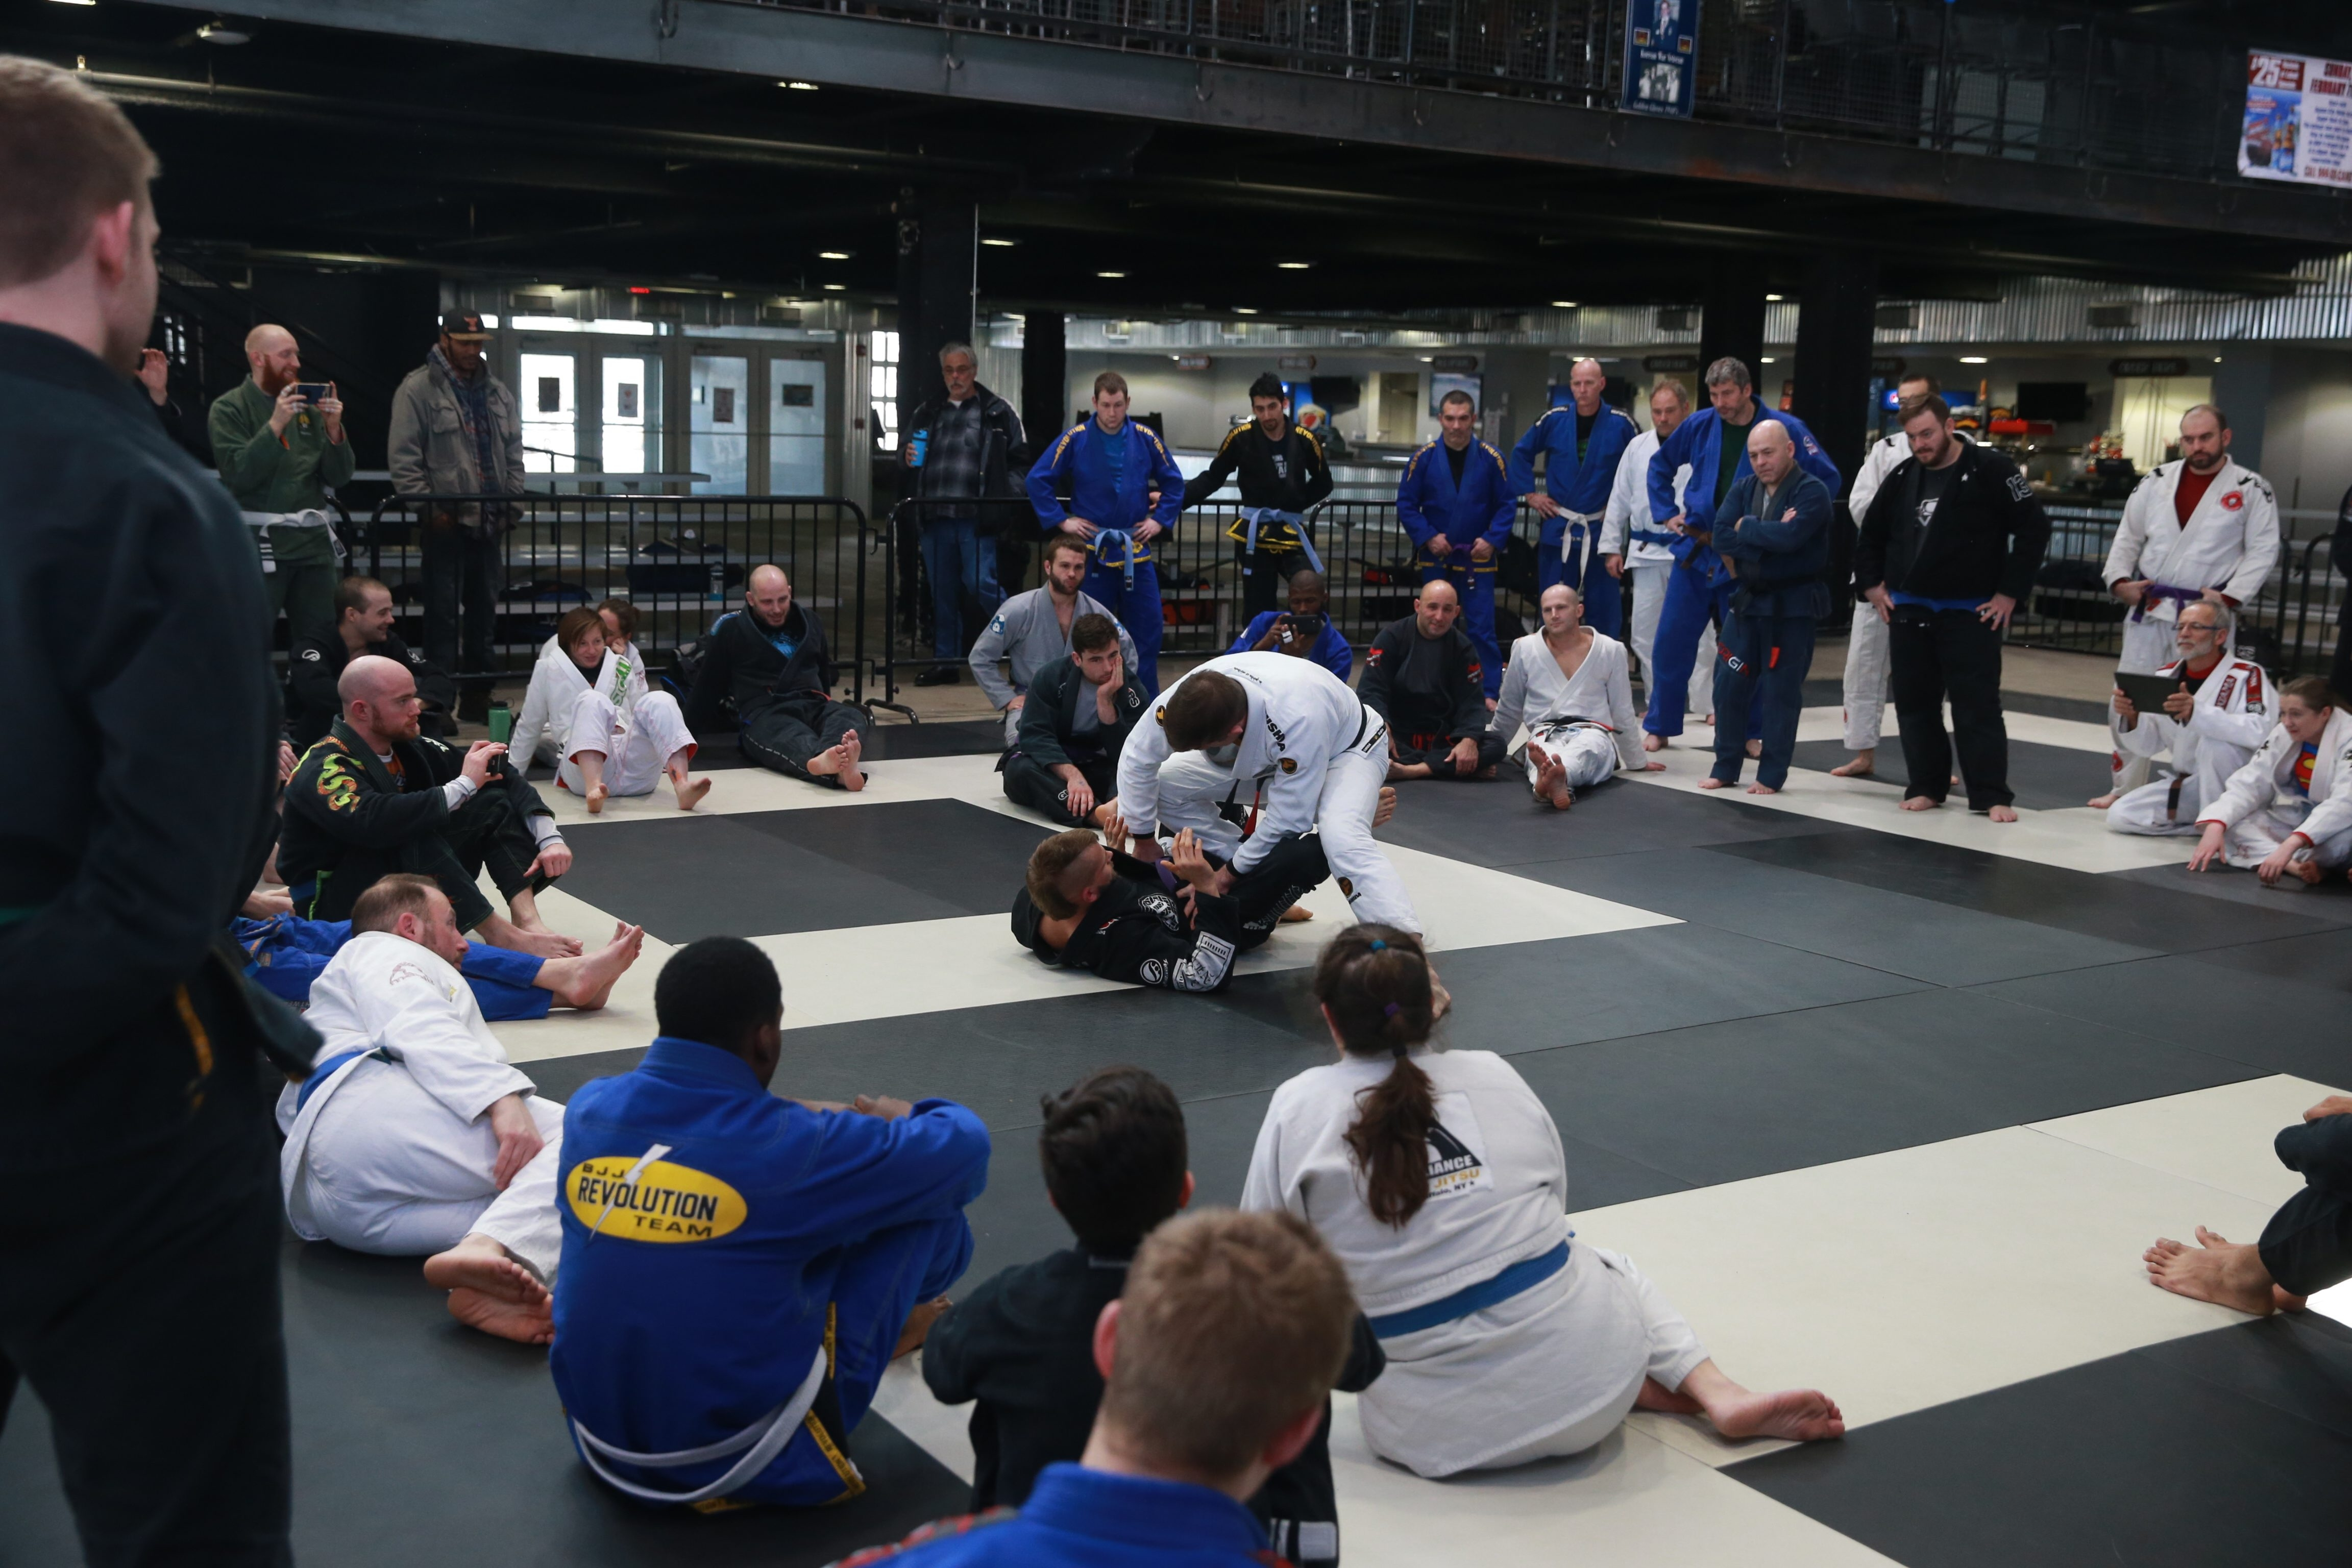 Michael Katilus, in white, demonstrates a move with Jordan Marwin, in black, at a jiu jitsu seminar at Buffalo Riverworks on Saturday. More than 60 people donated at least $30 apiece to take part in the event, a benefit to help Paul Moran pay his cancer treatment bills.